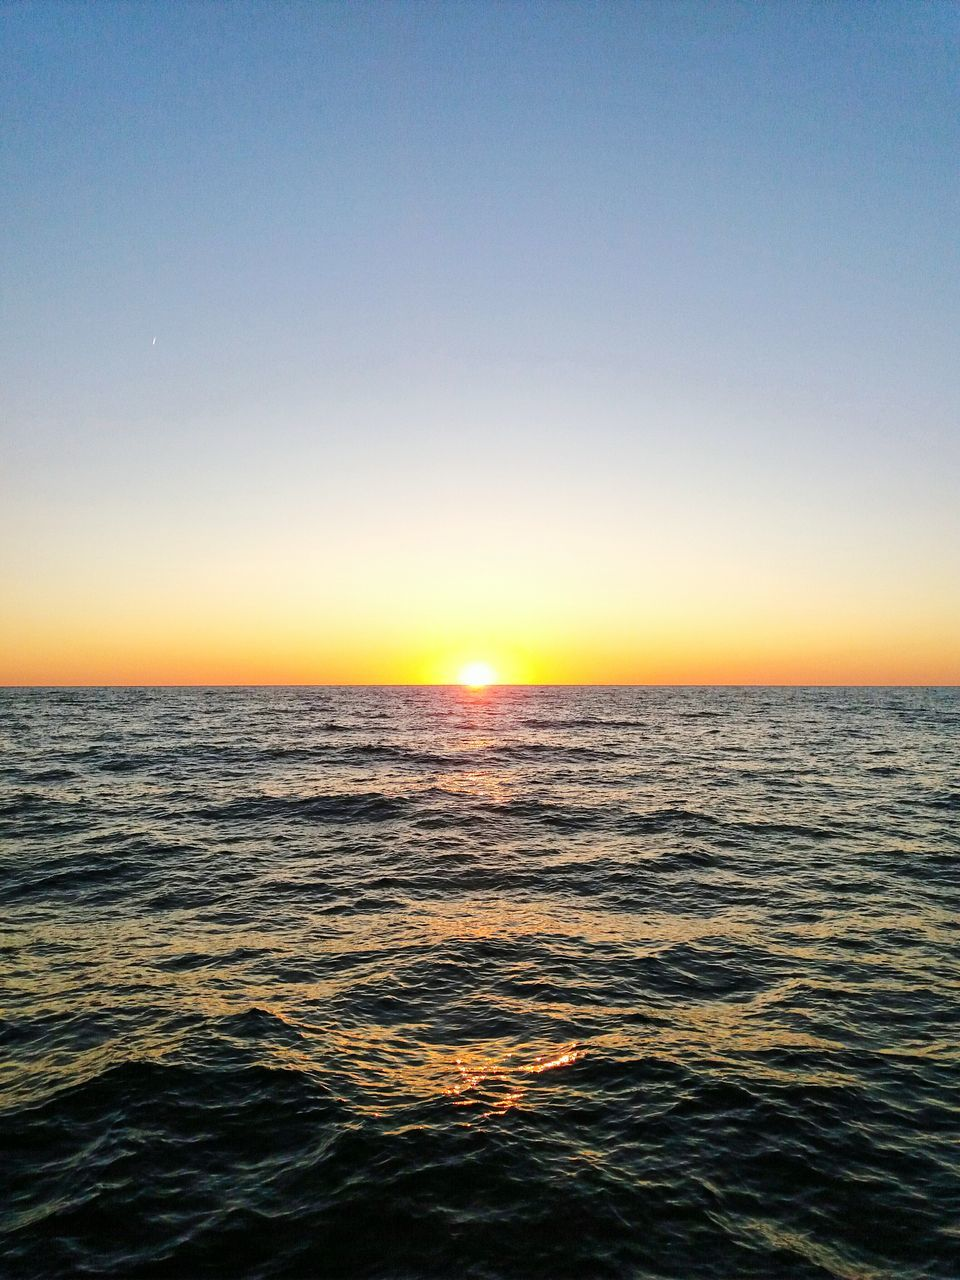 sea, sunset, scenics, beauty in nature, water, nature, tranquil scene, horizon over water, tranquility, rippled, idyllic, clear sky, outdoors, waterfront, no people, sun, sky, sunlight, wave, day